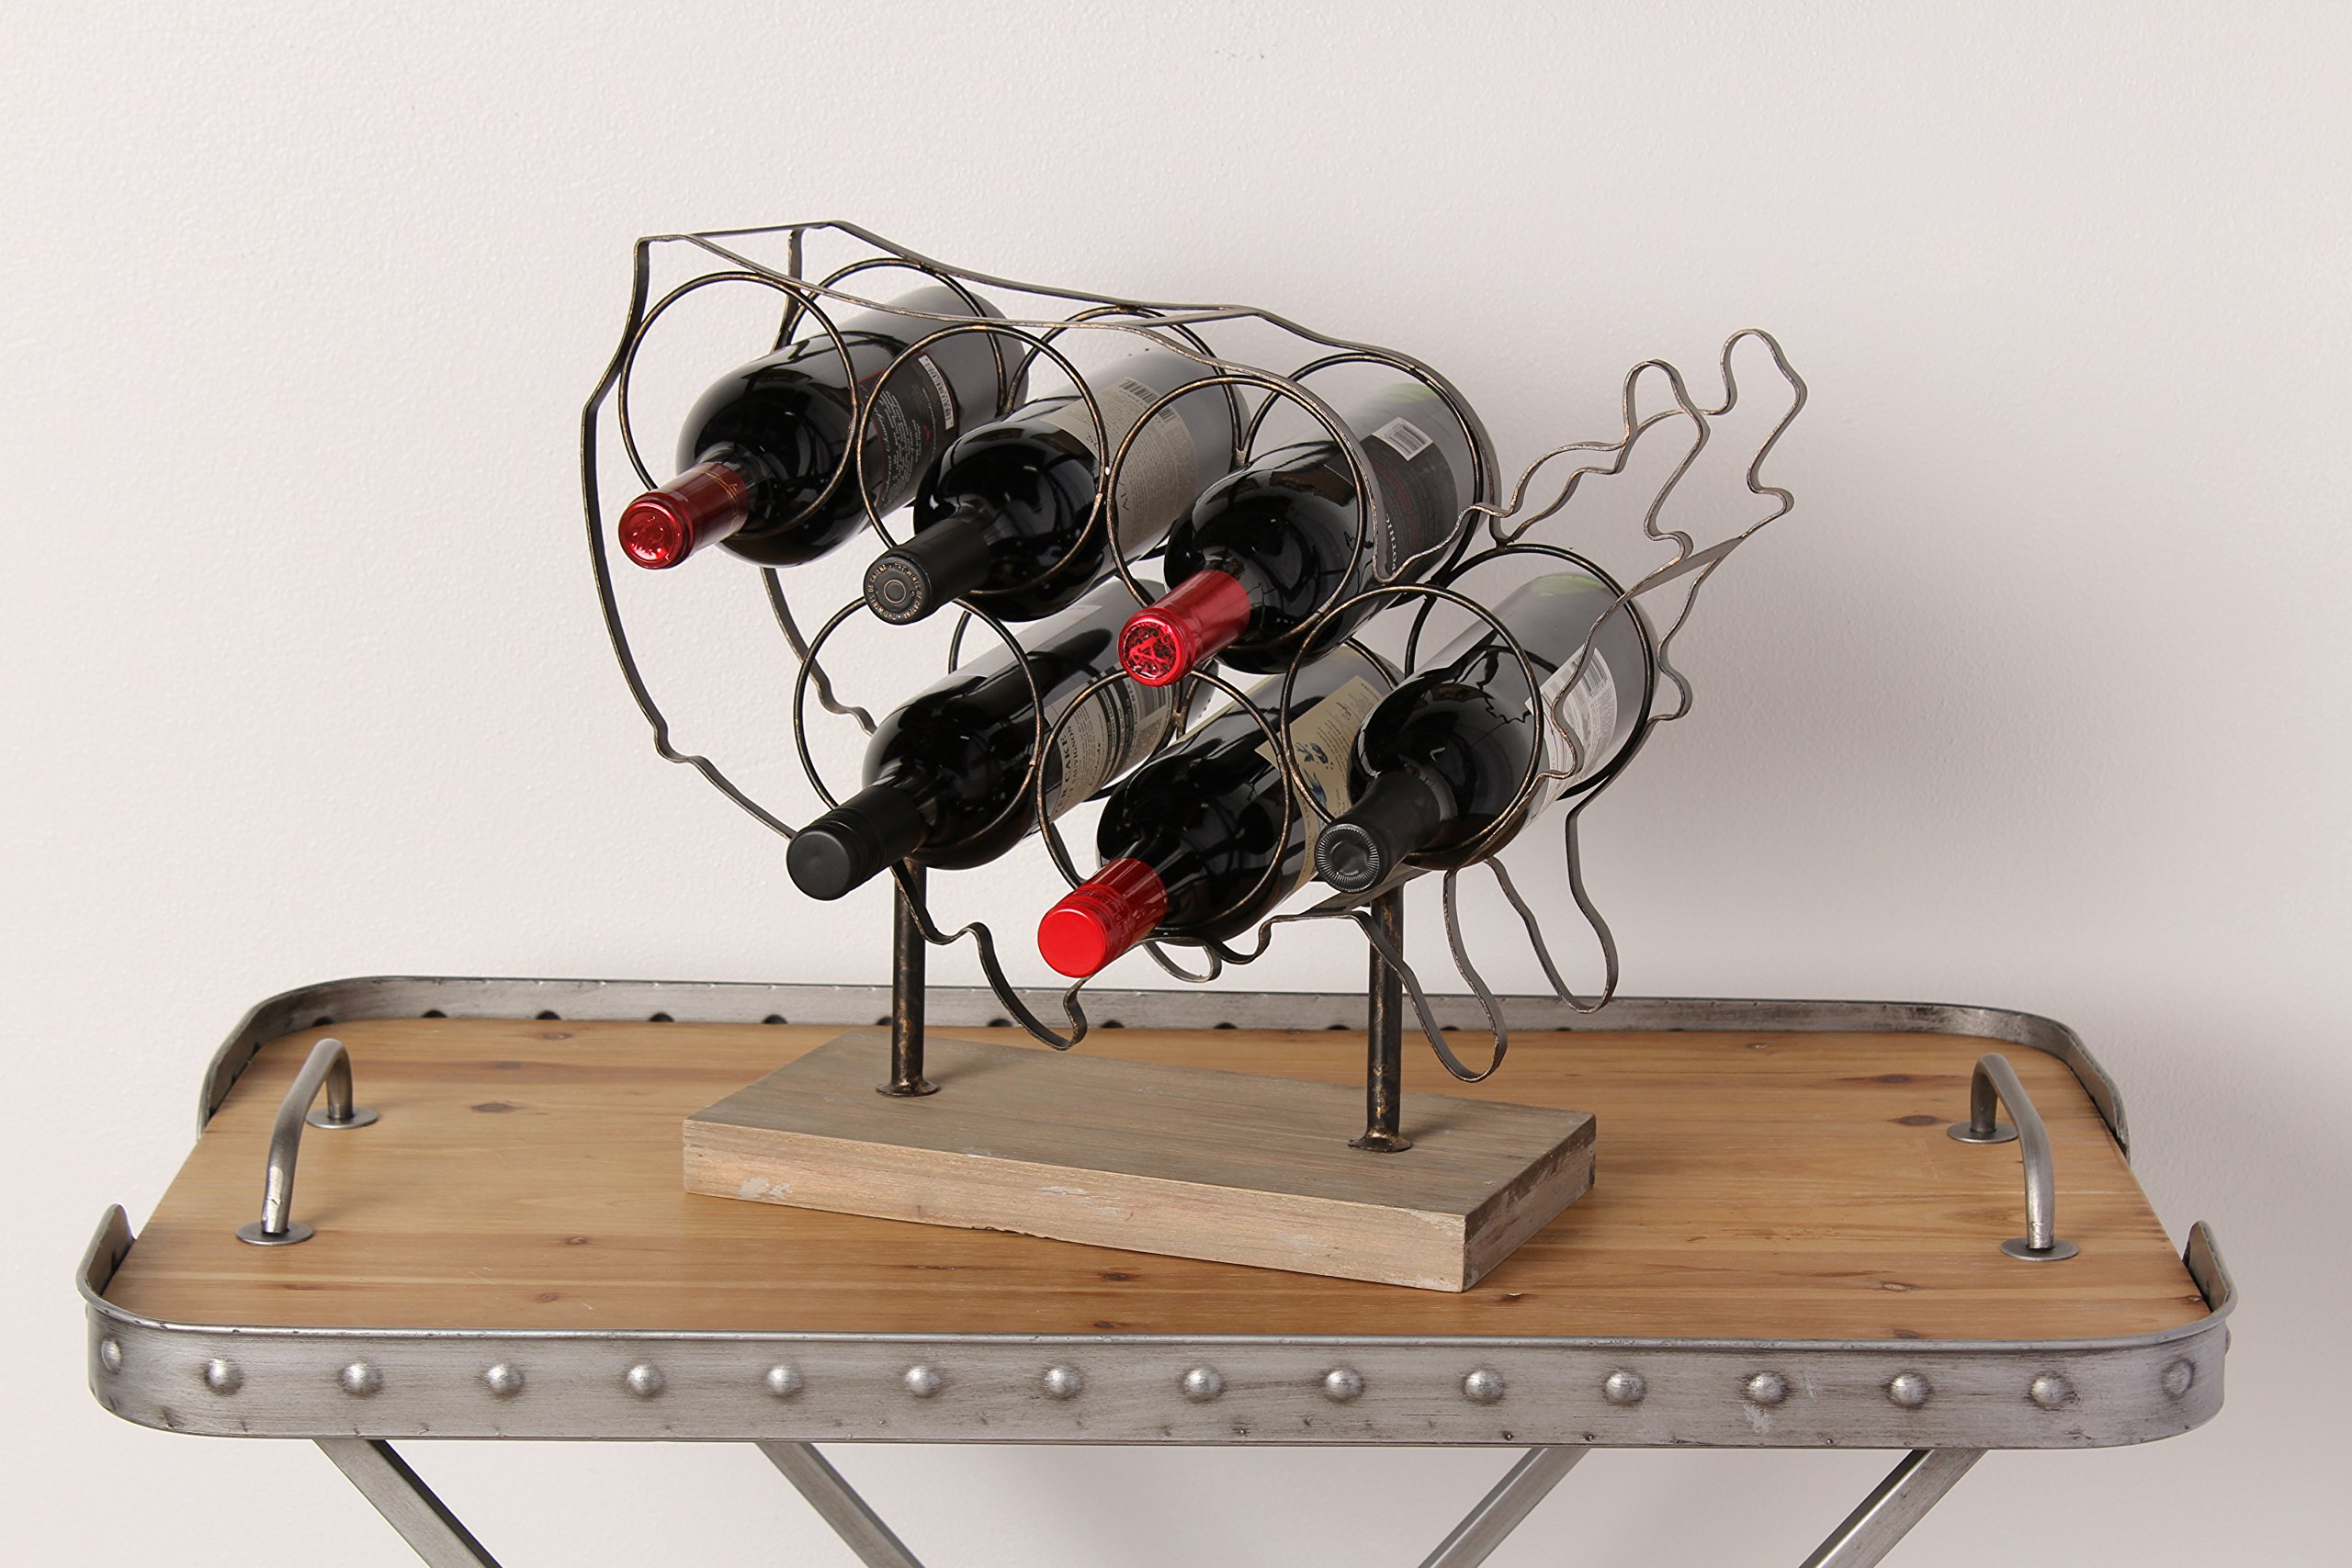 Kate and Laurel America Countertop Lightweight Metal and Wood Wine Rack Holds 6 Wine Bottles by Kate and Laurel